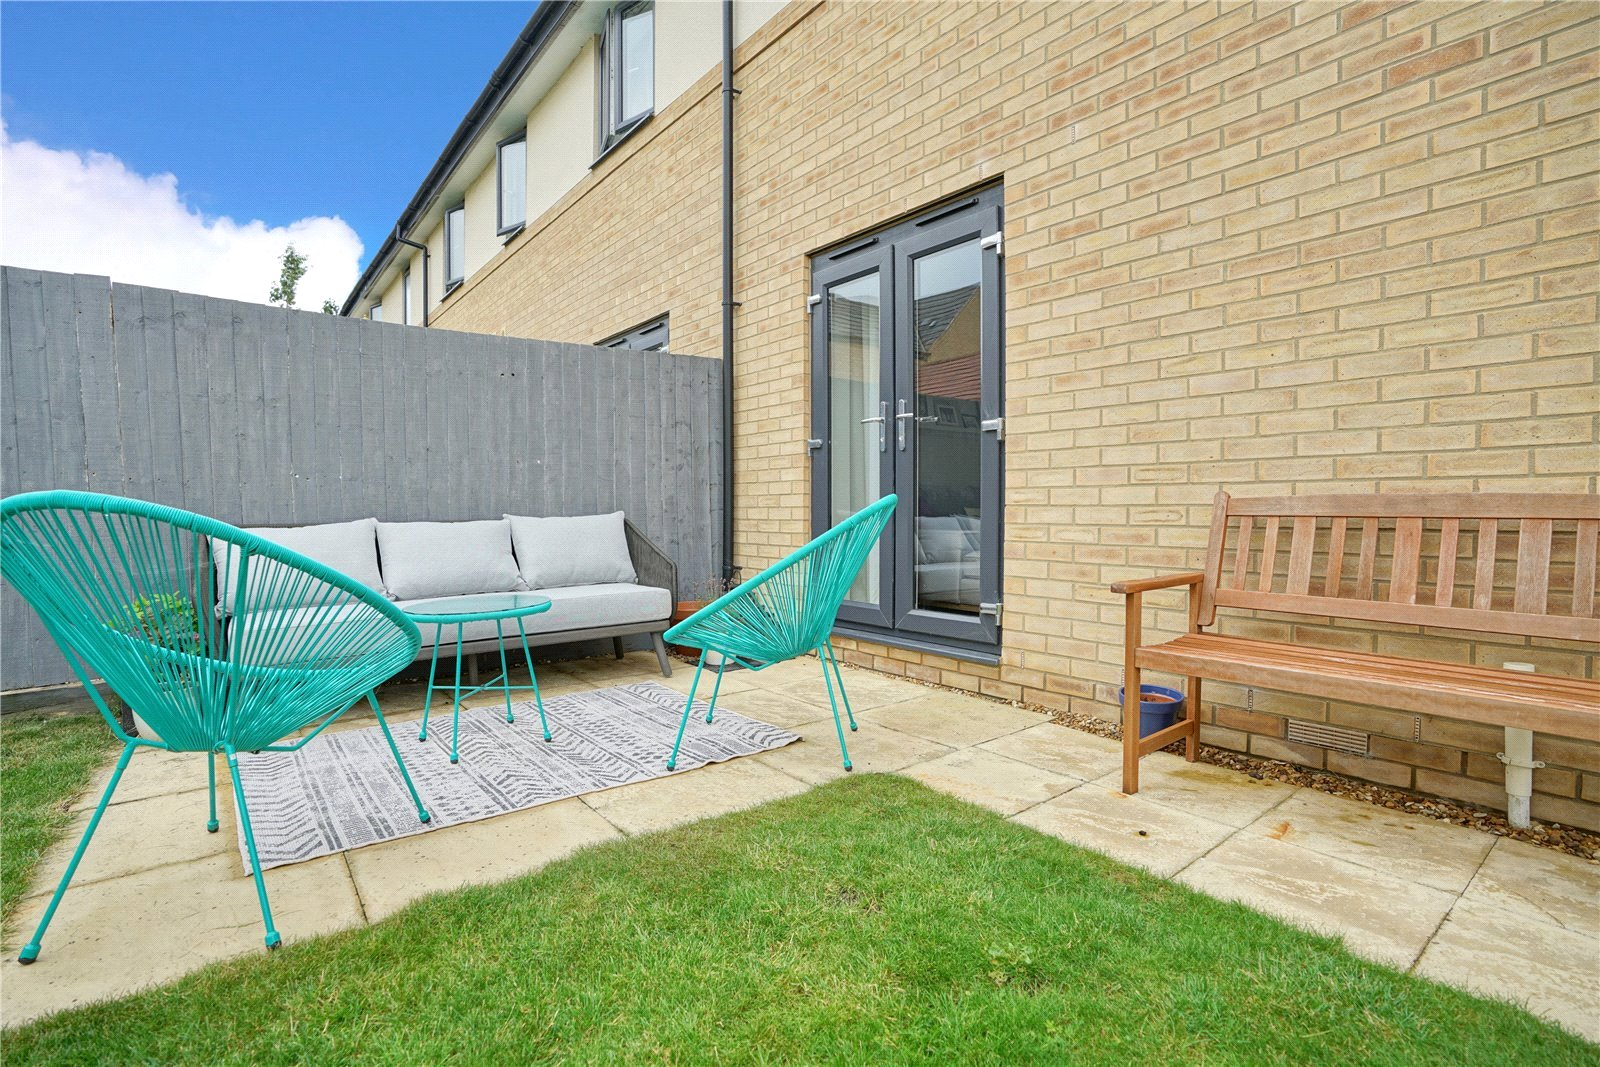 3 bed house for sale in St. Ives, PE27 5DL 14